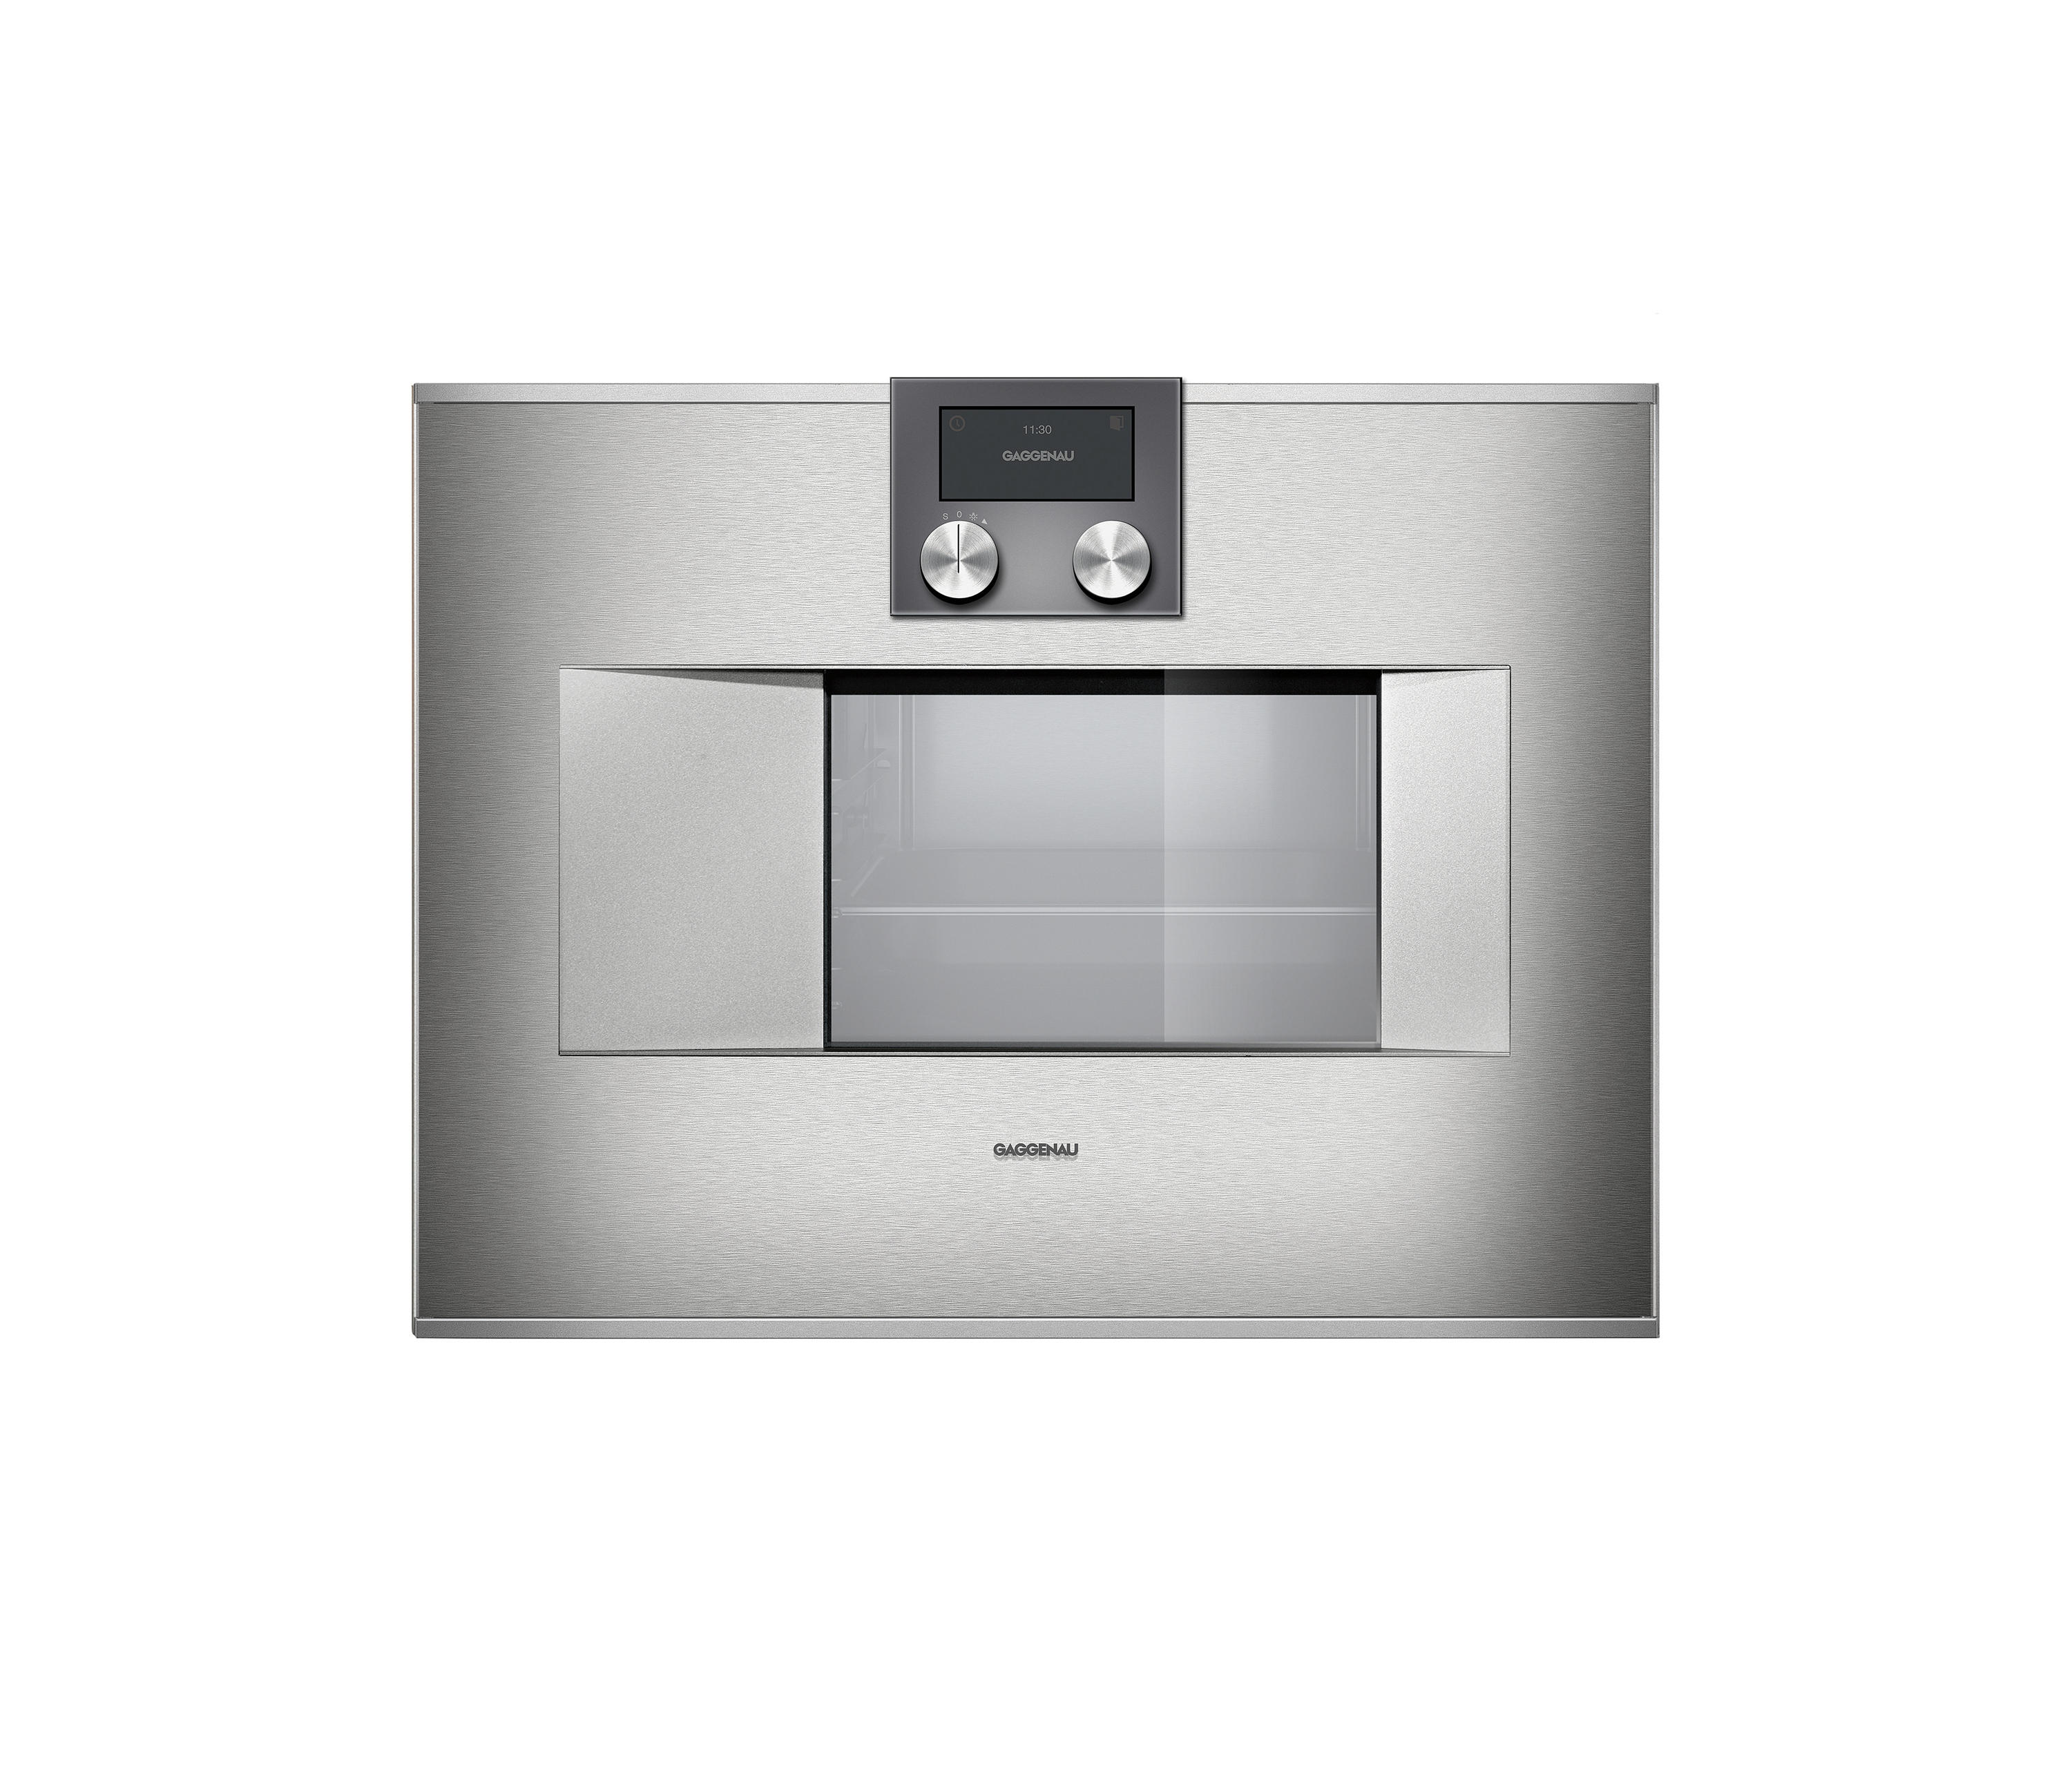 combi steam oven 400 series bs 470 bs 471 bs 474 bs 475 ovens from gaggenau architonic. Black Bedroom Furniture Sets. Home Design Ideas